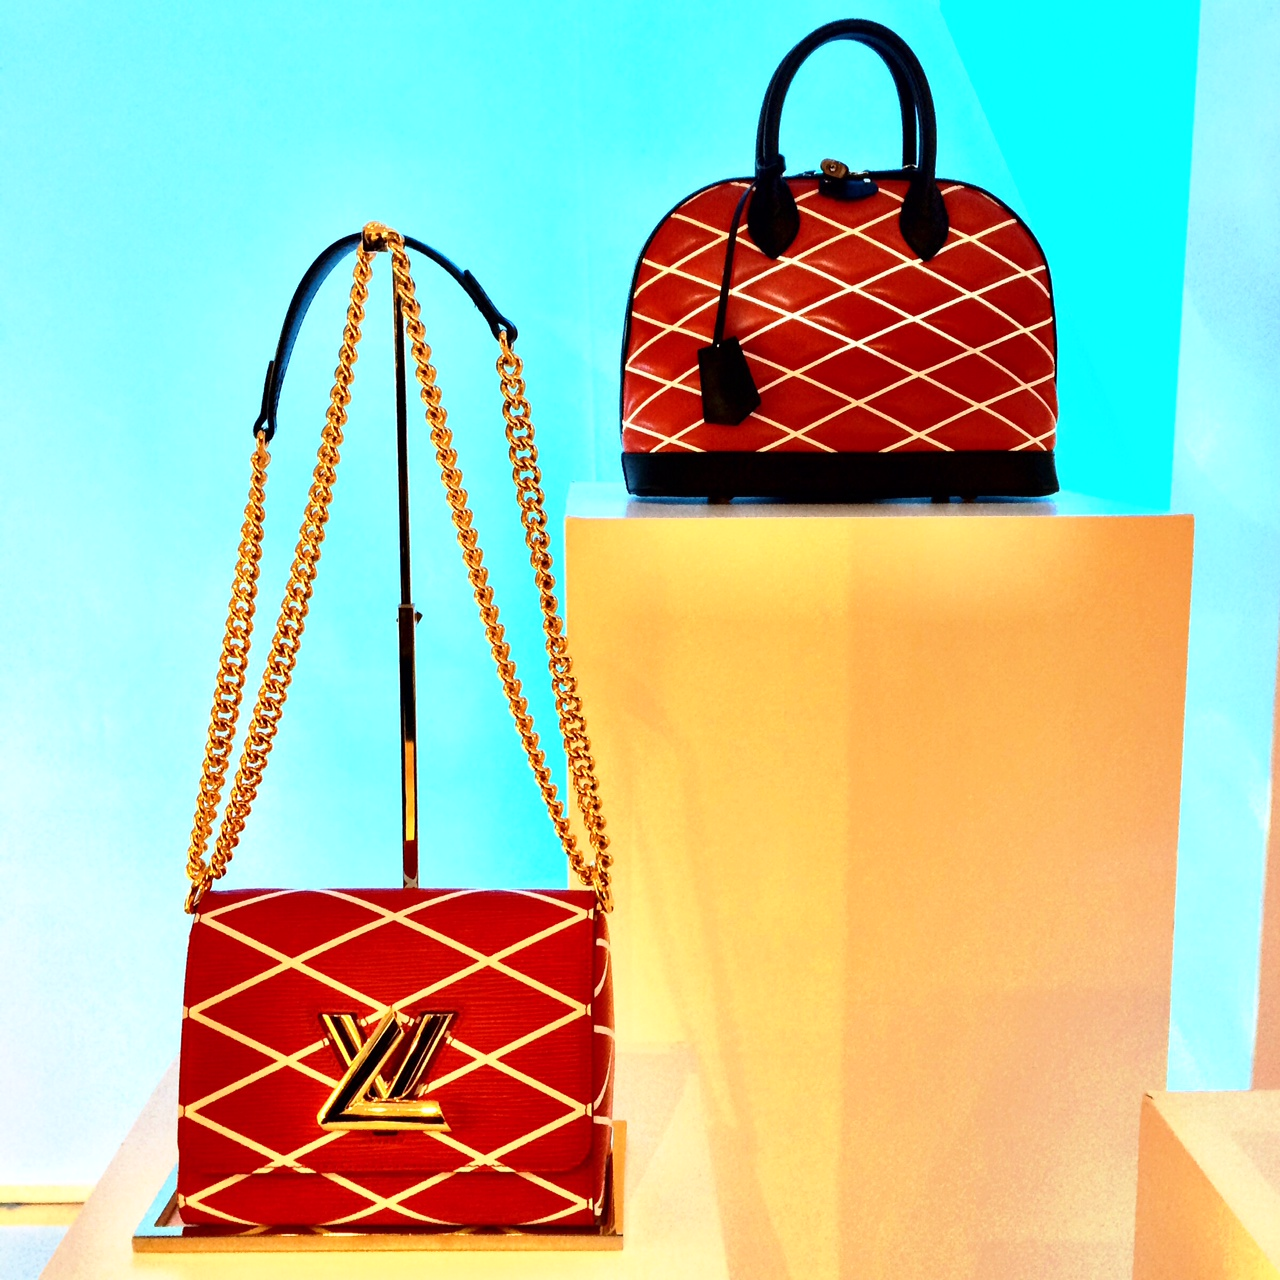 EVENT LOUIS VUITTON CRUISE COLLECTION 2014 by NICOLAS GHESQUIERE